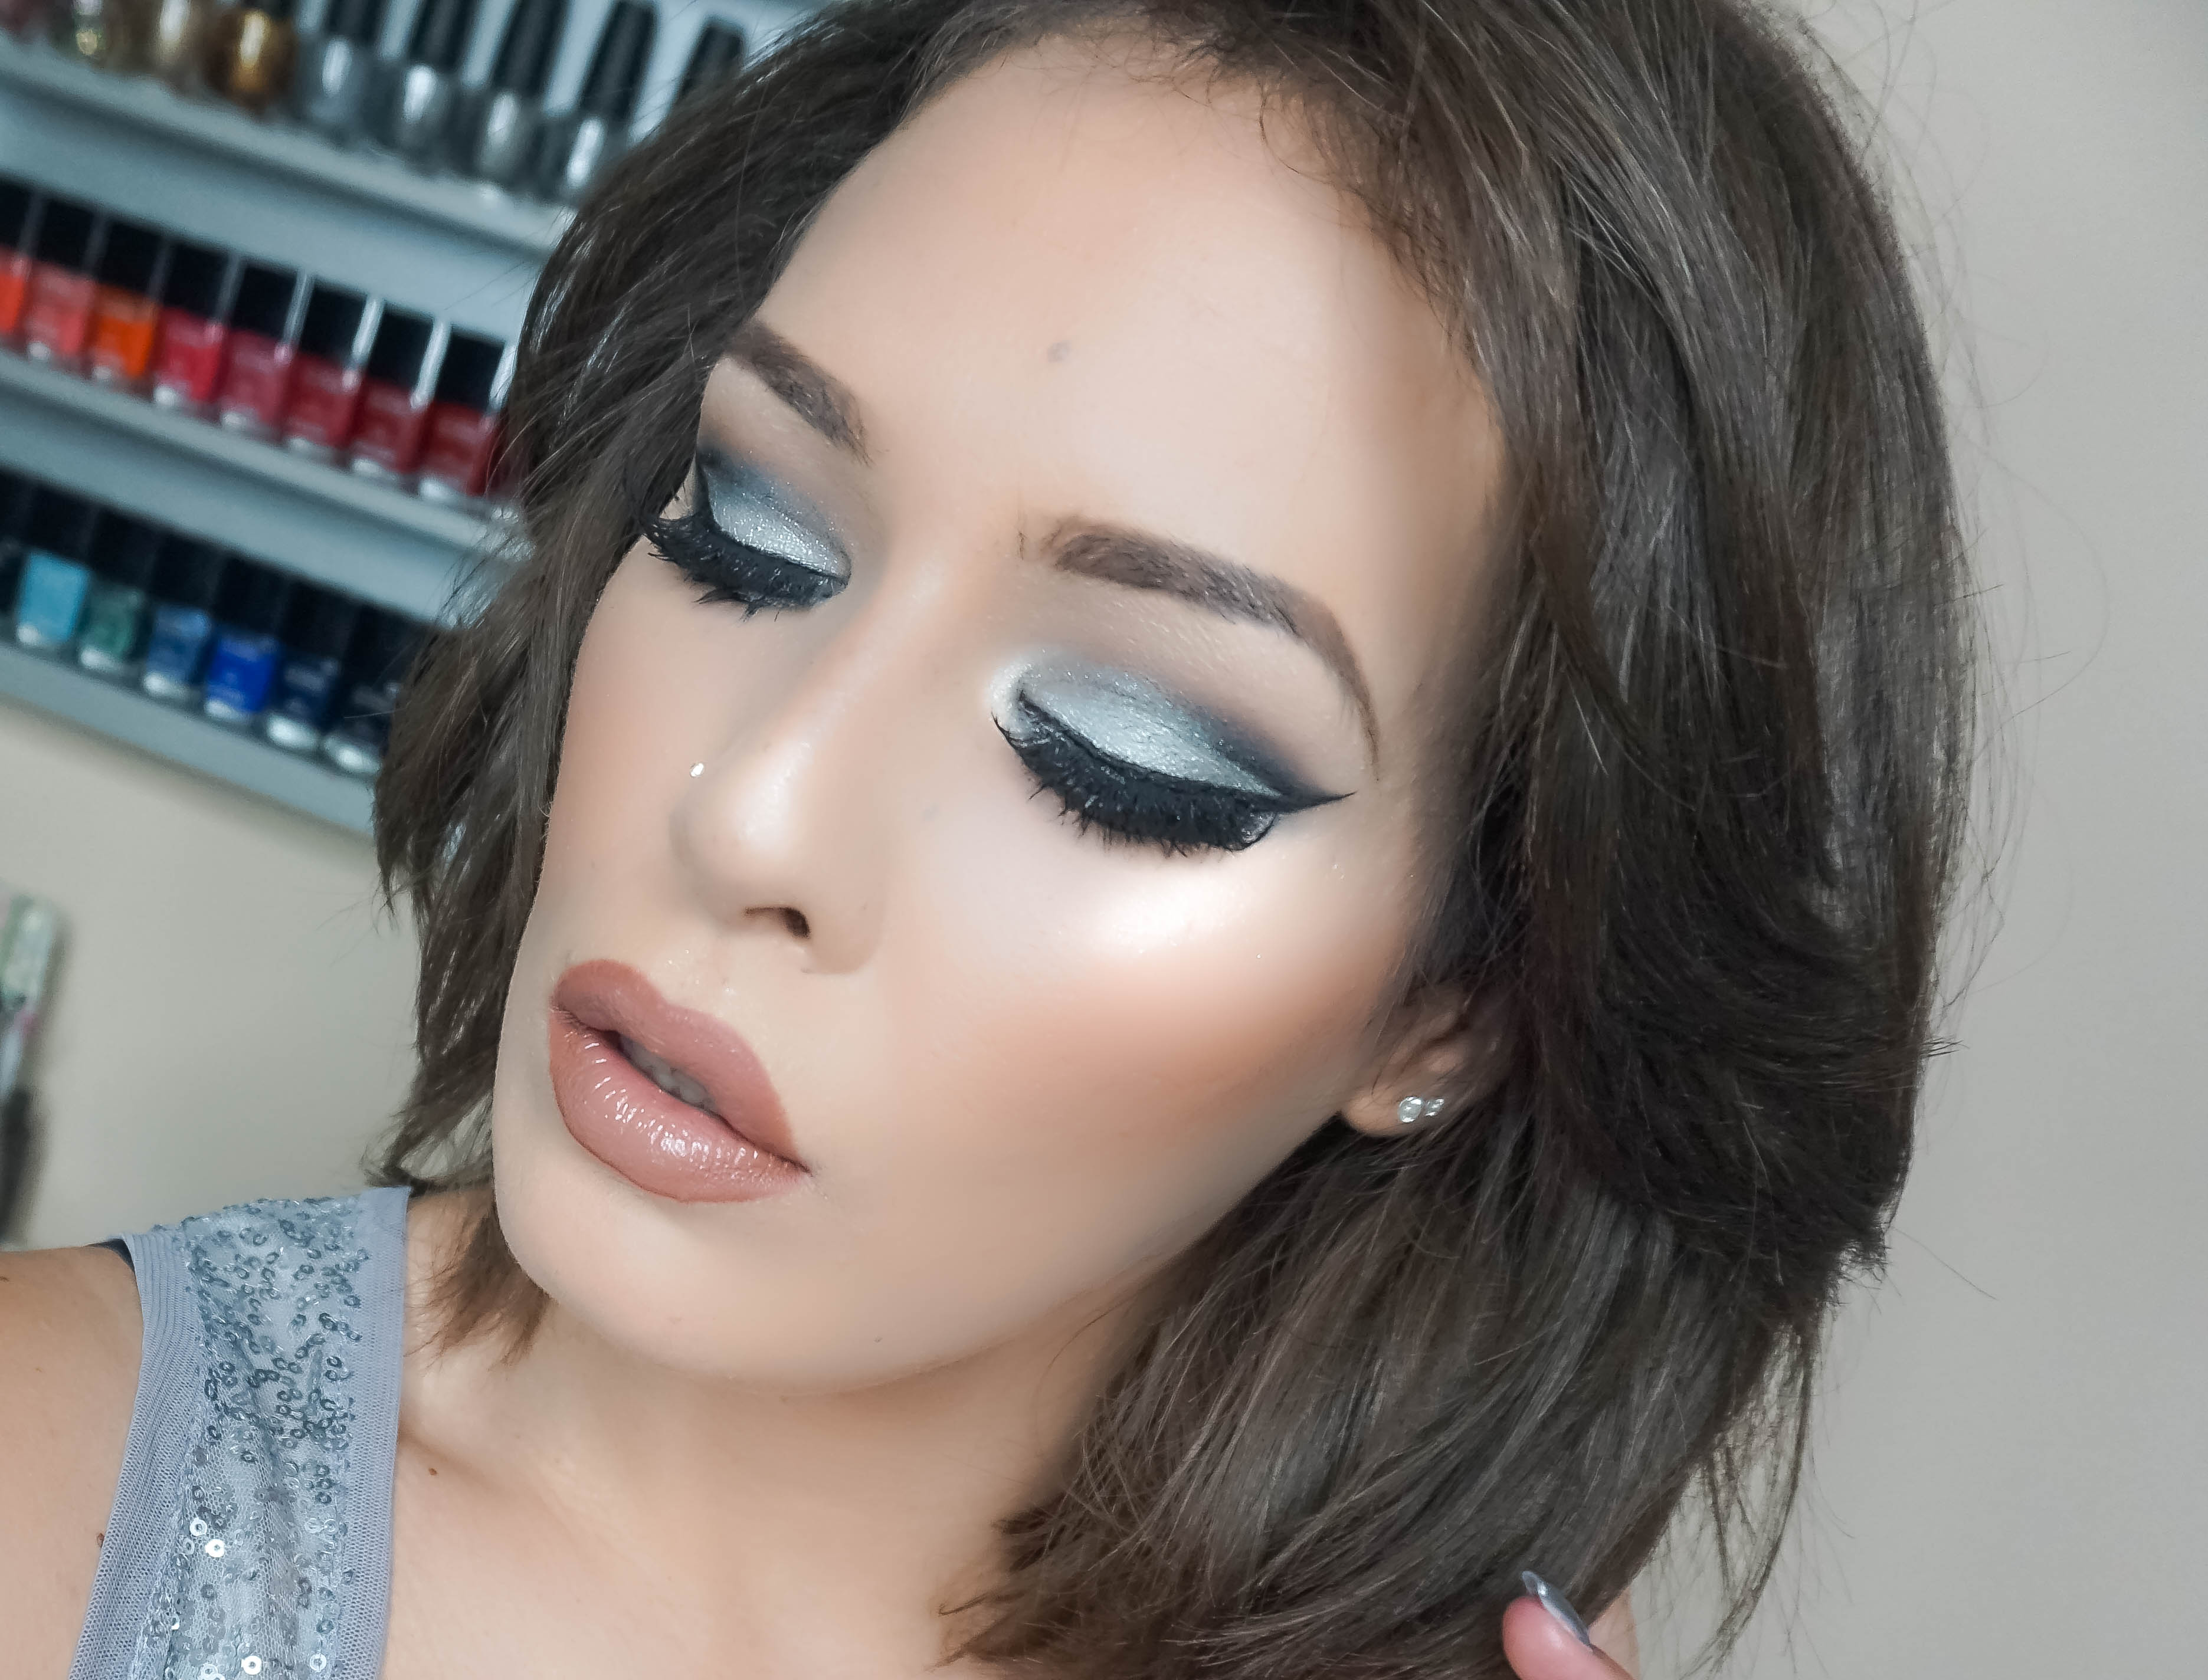 LAST MINUTE NEW YEAR'S EVE MAKEUP LOOK